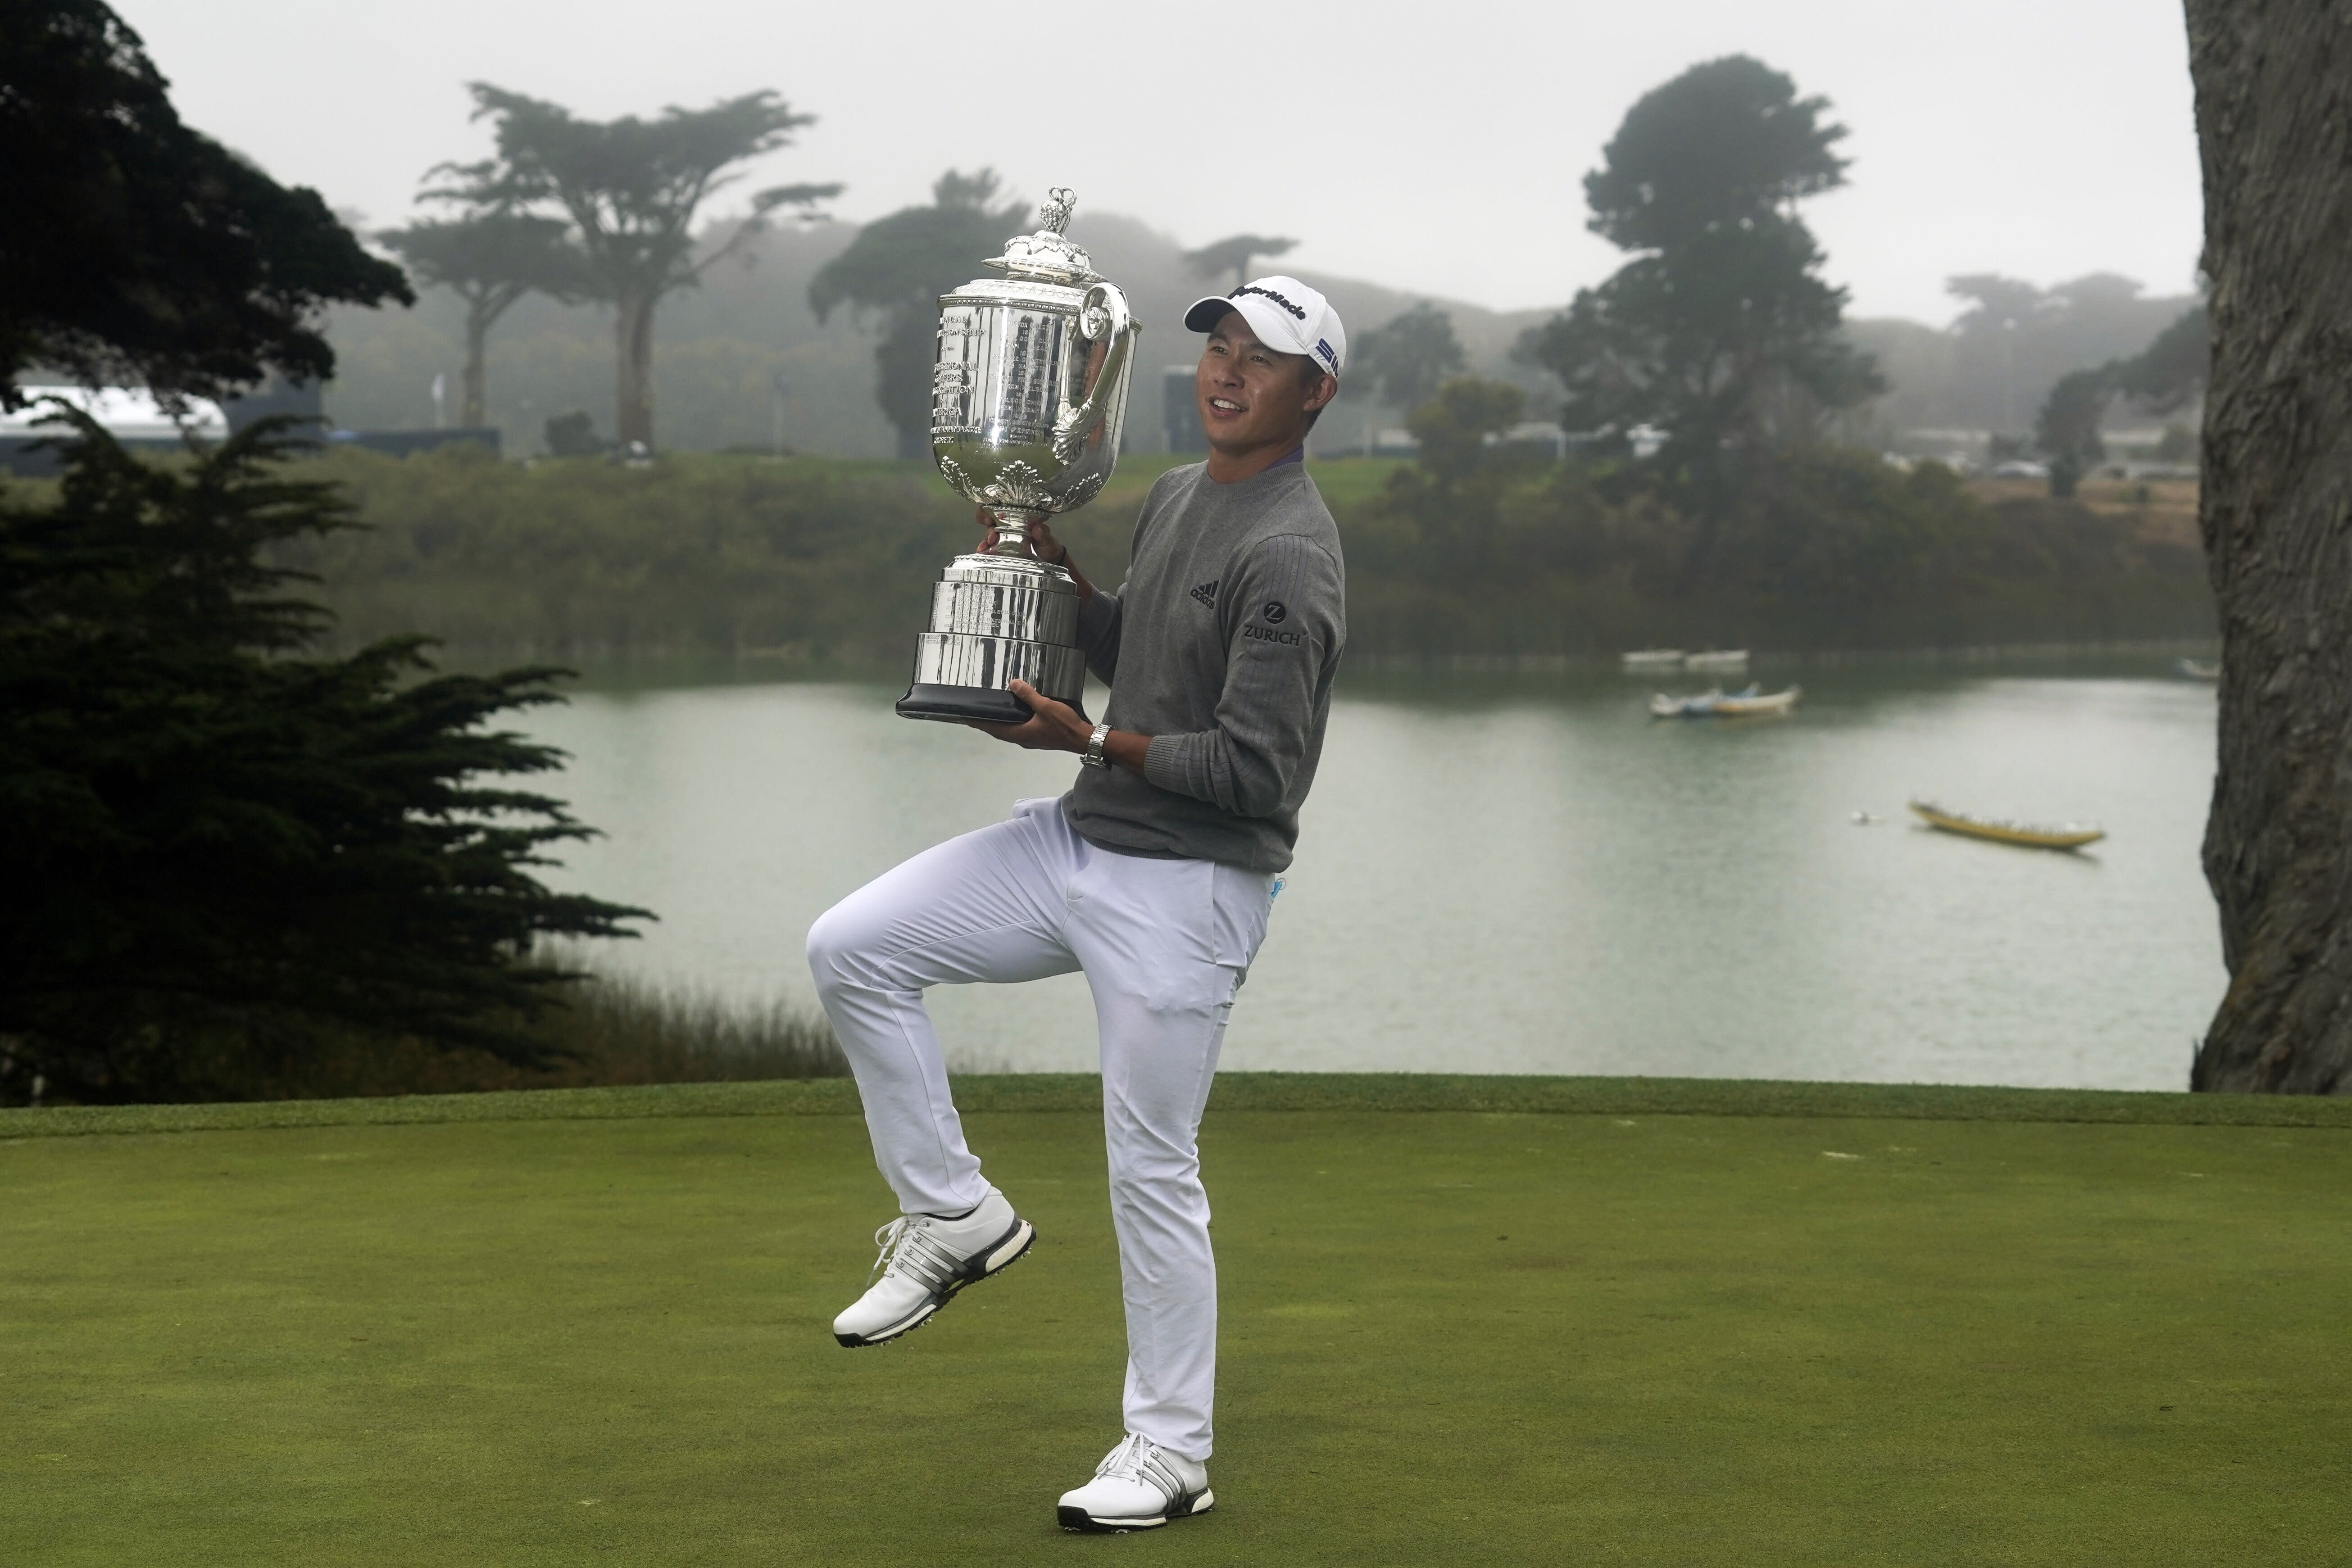 Collin Morikawa holds the Wanamaker Trophy after winning the PGA Championship golf tournament at TPC Harding Park Sunday, Aug. 9, 2020, in San Francisco. (AP Photo/Jeff Chiu)